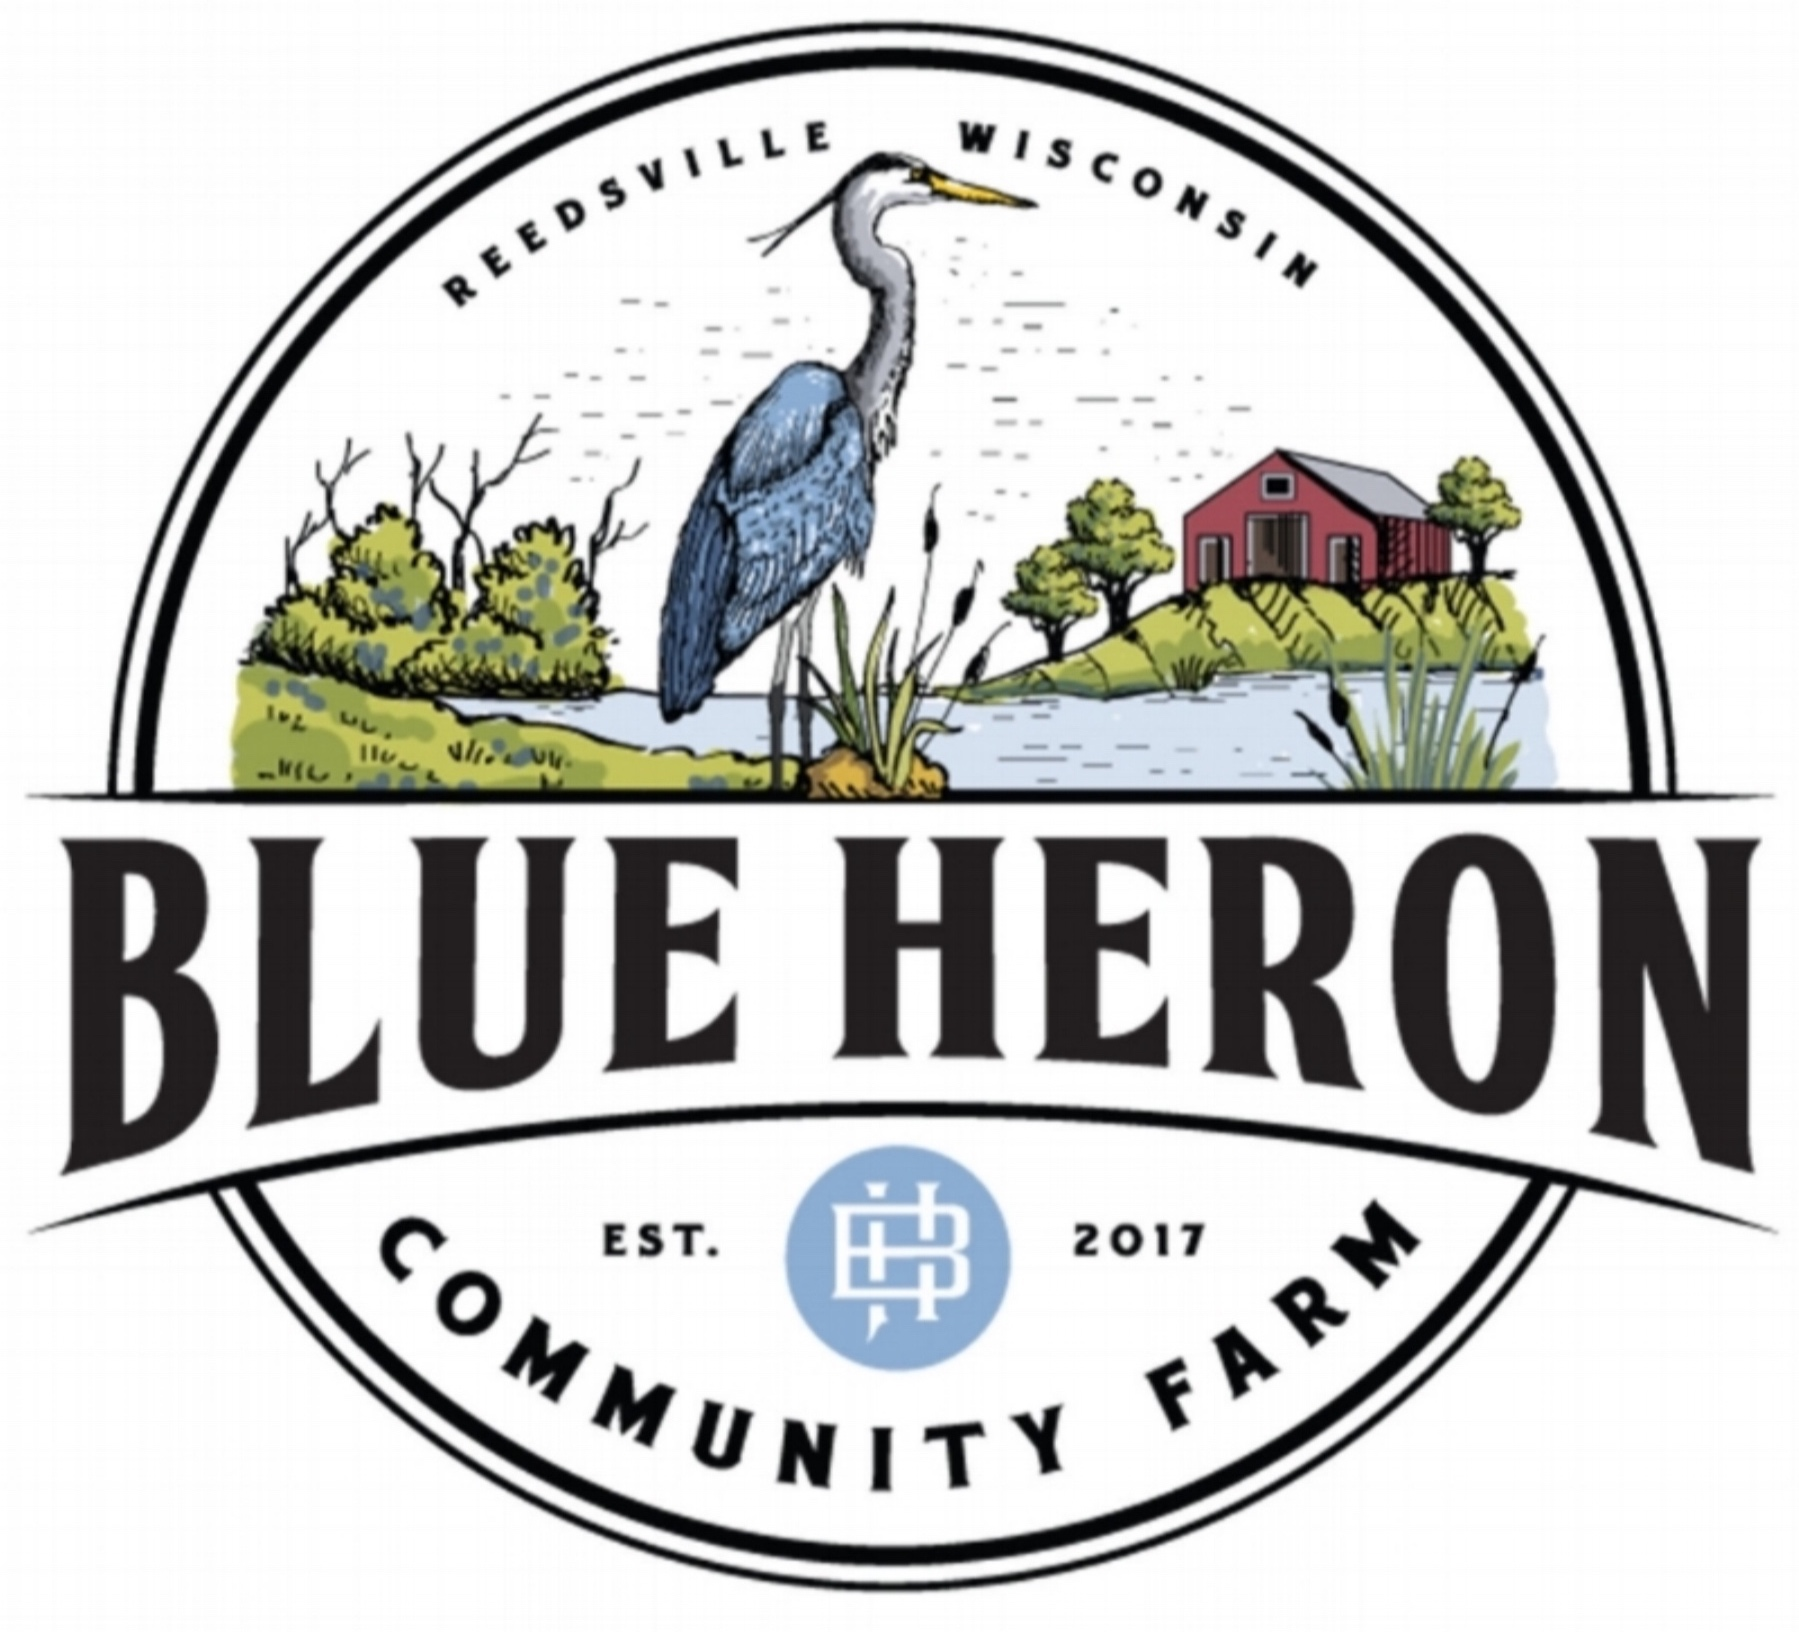 Blue Heron Community Farm